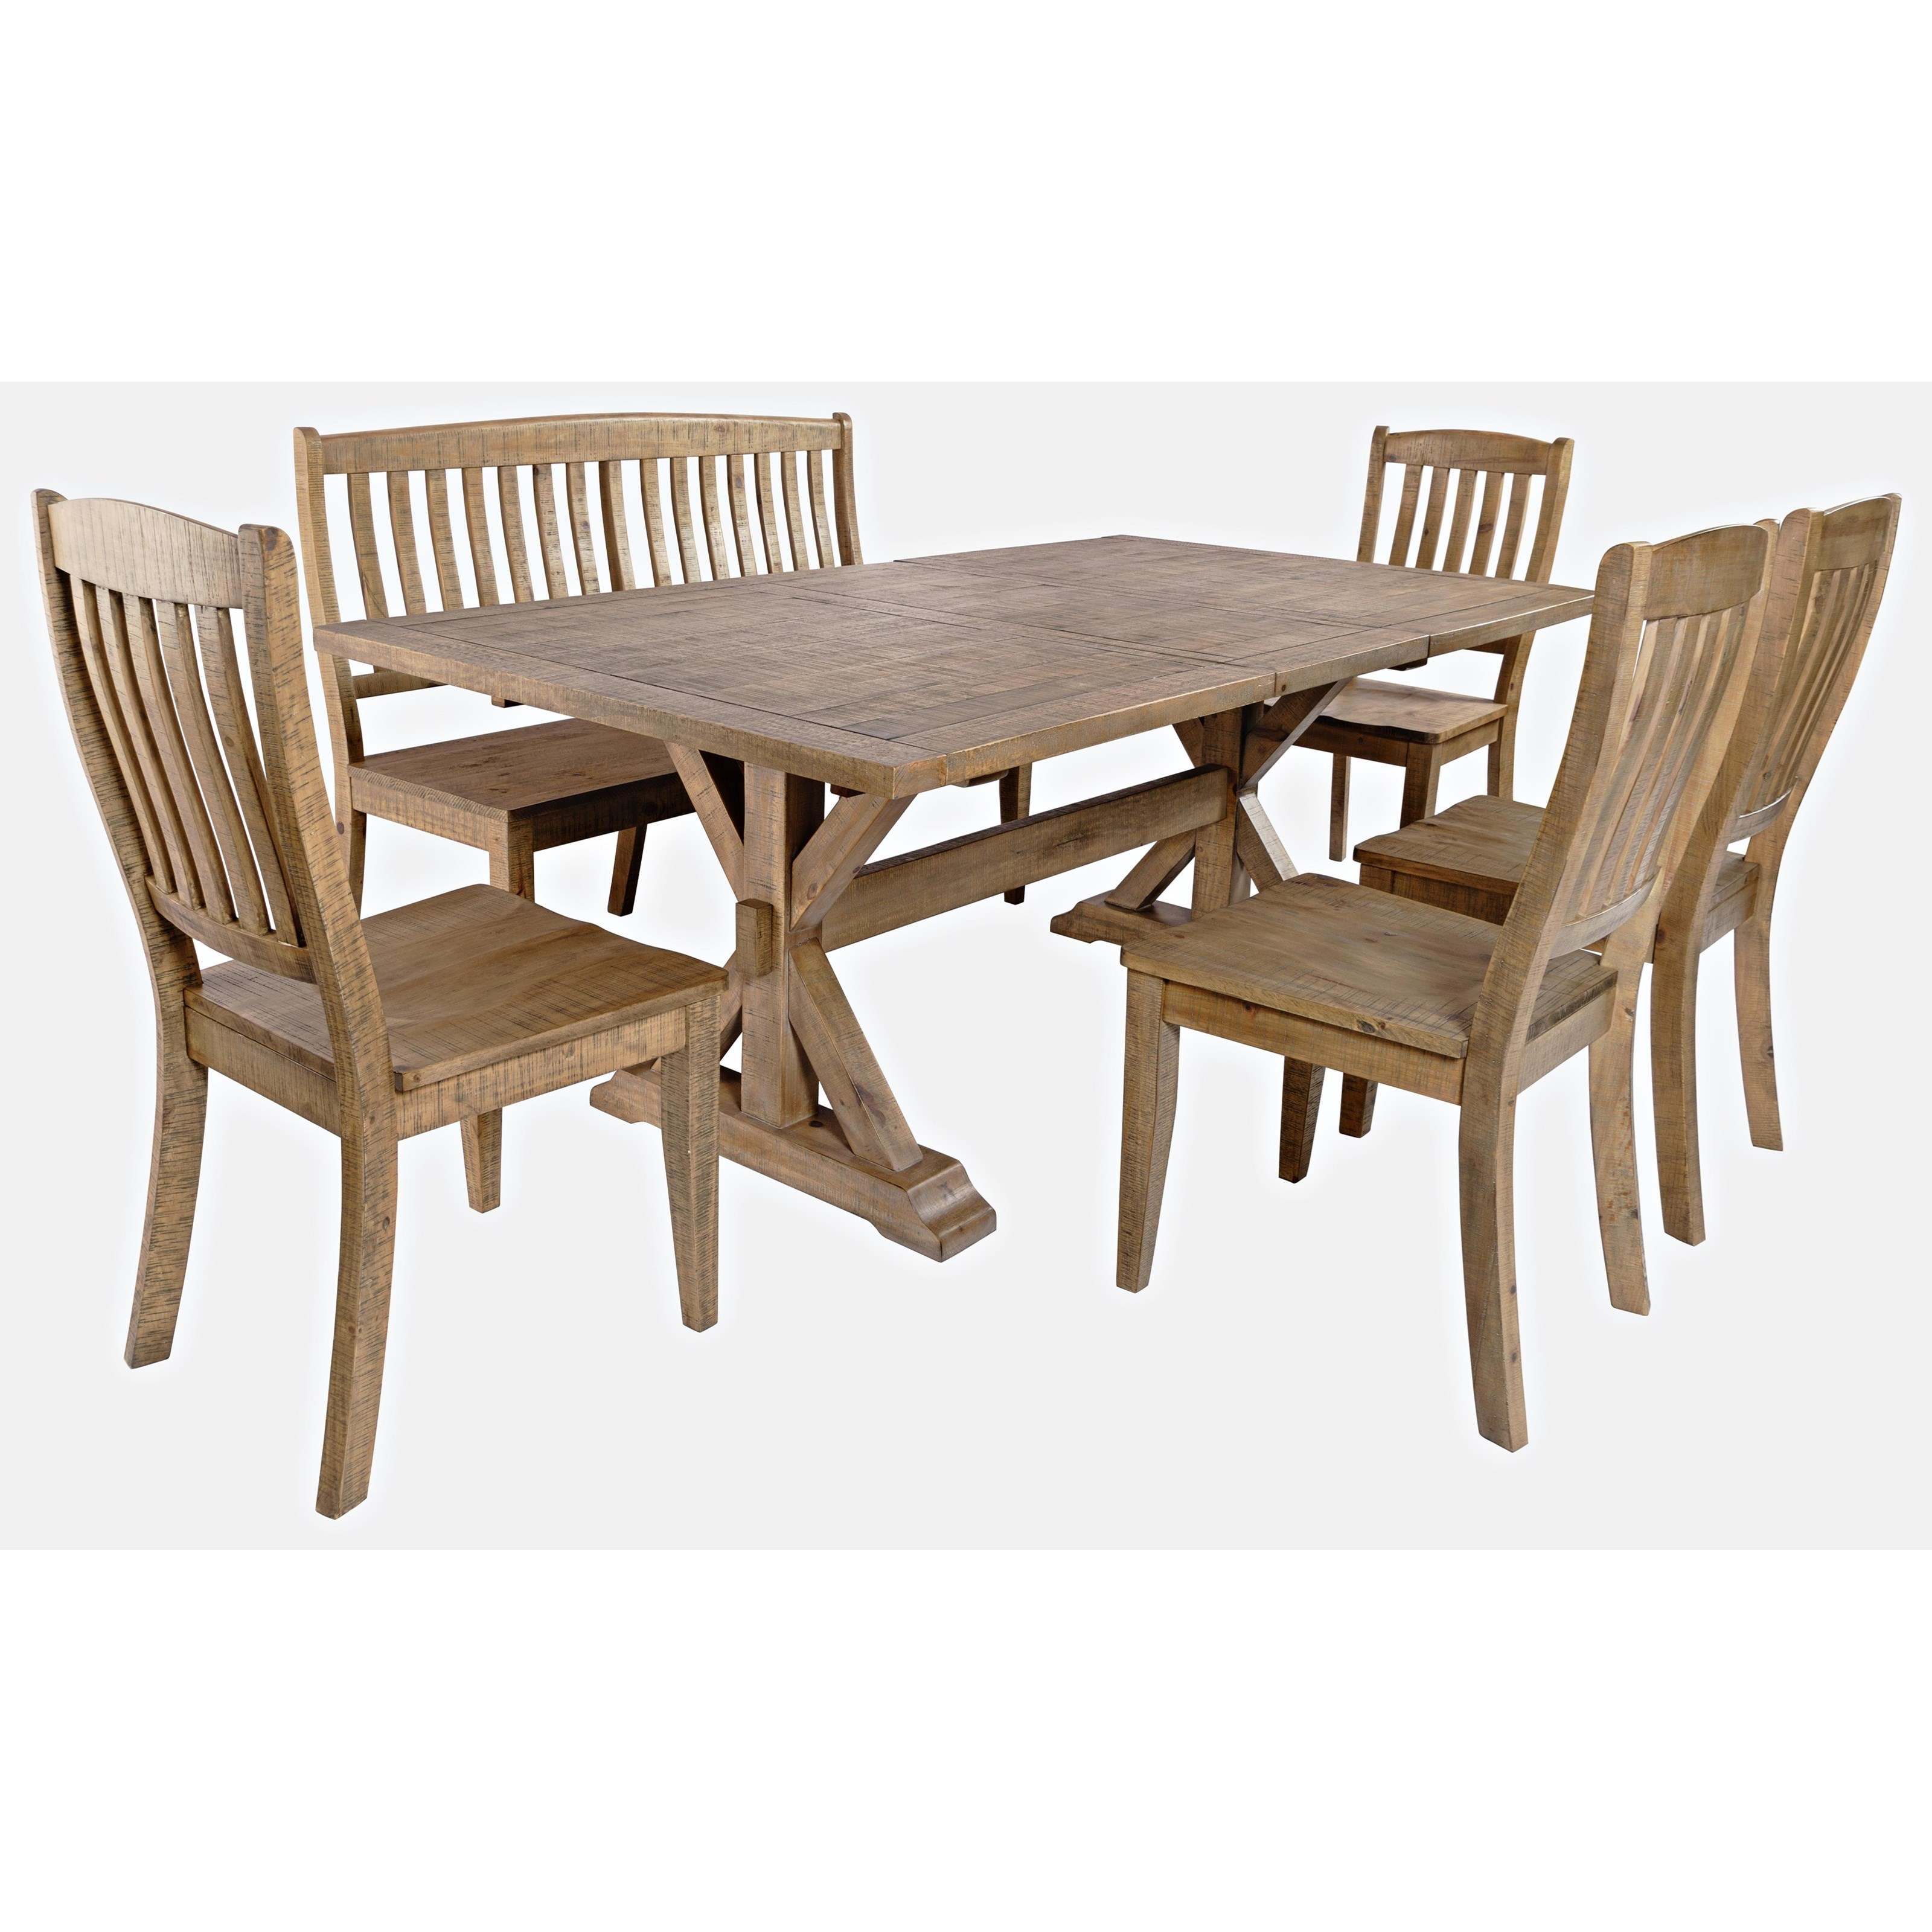 6-Piece Dining Table and Chair Set